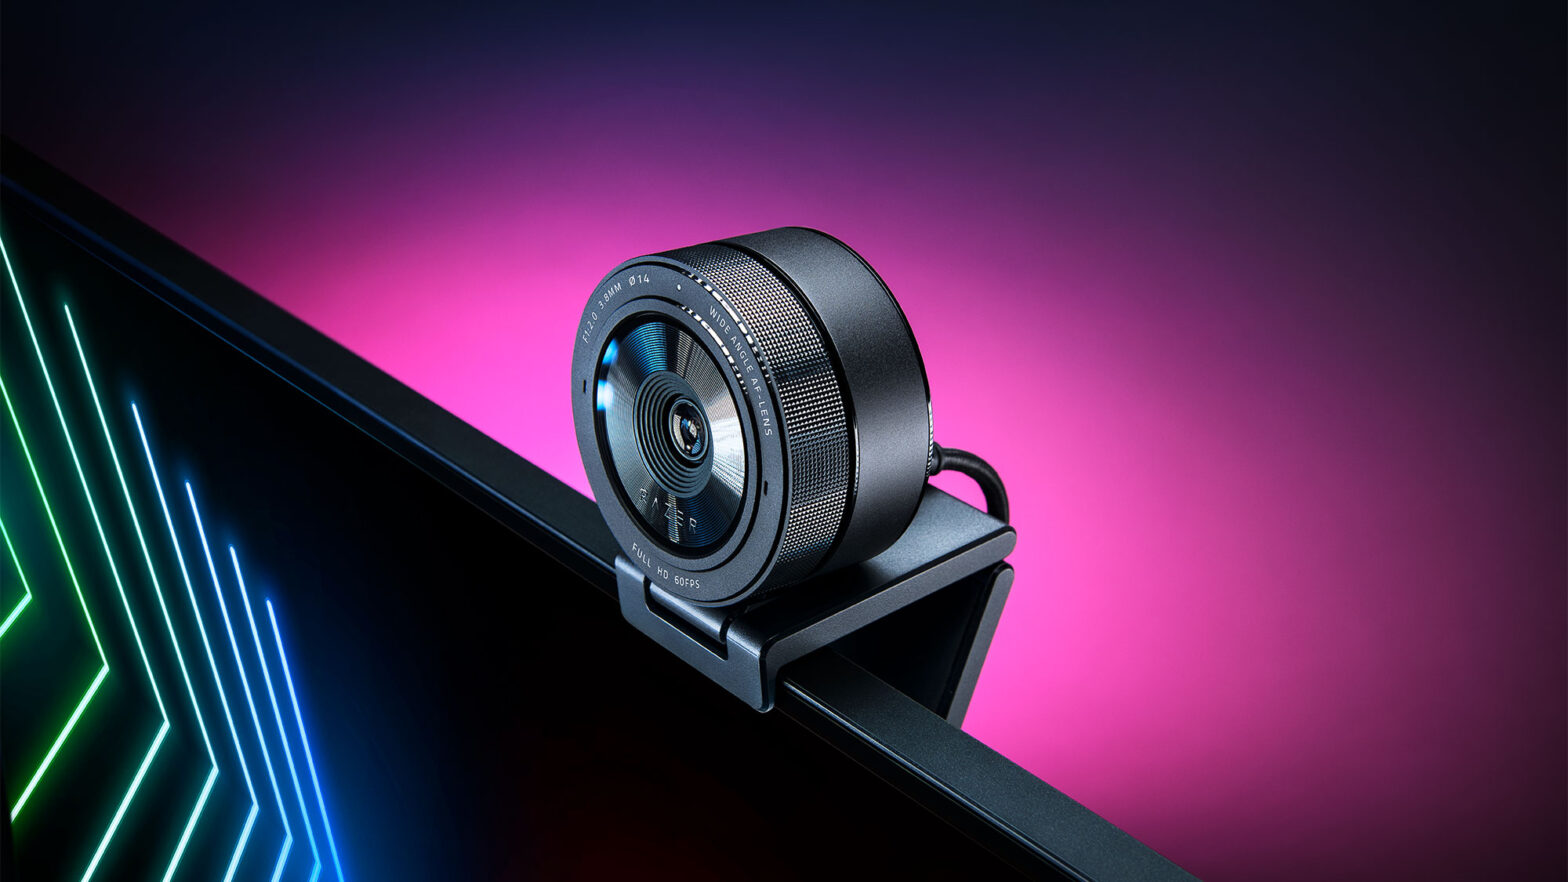 Razer Kiyo Pro Webcam with Adaptive Light Sensor